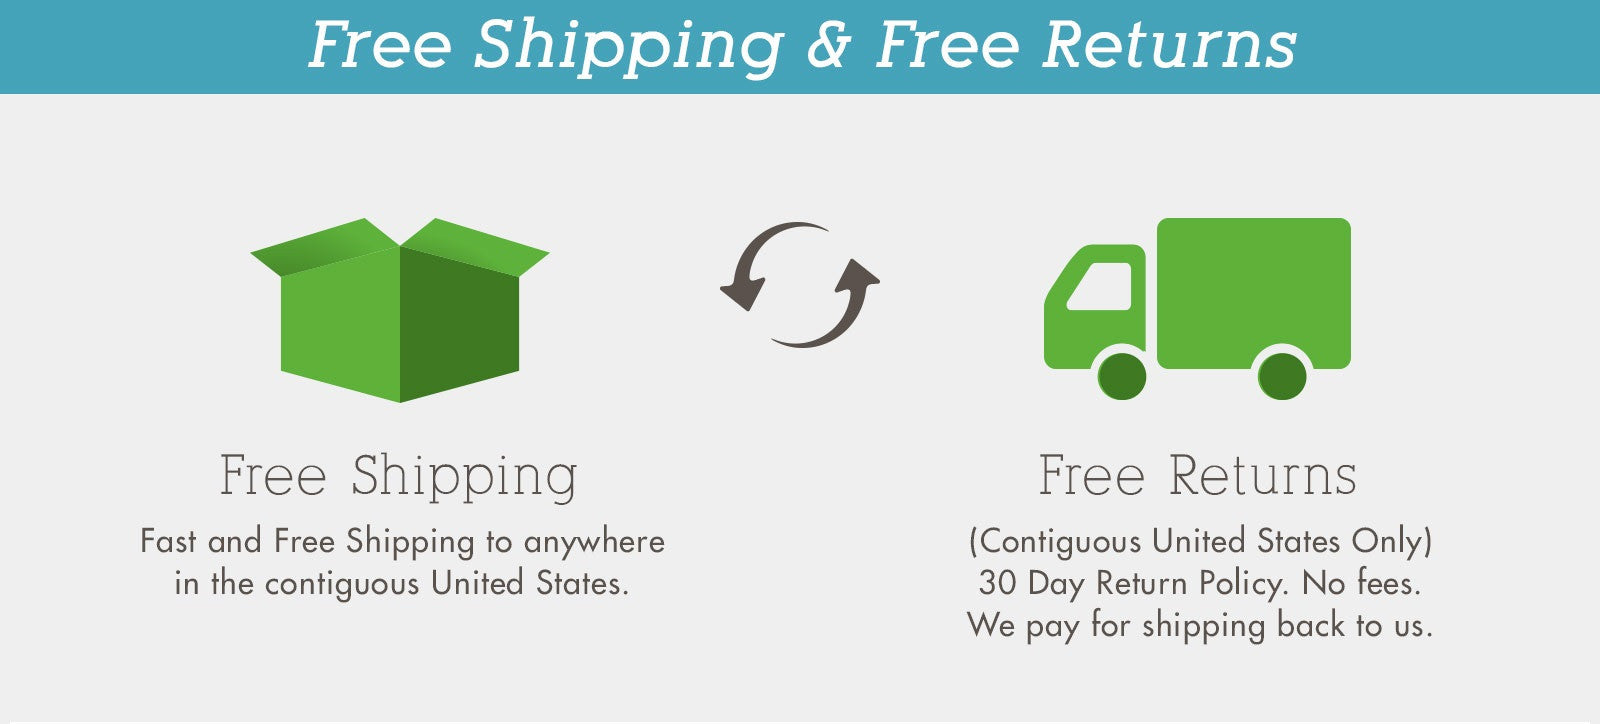 Free Shipping and Returns. Both Ways!